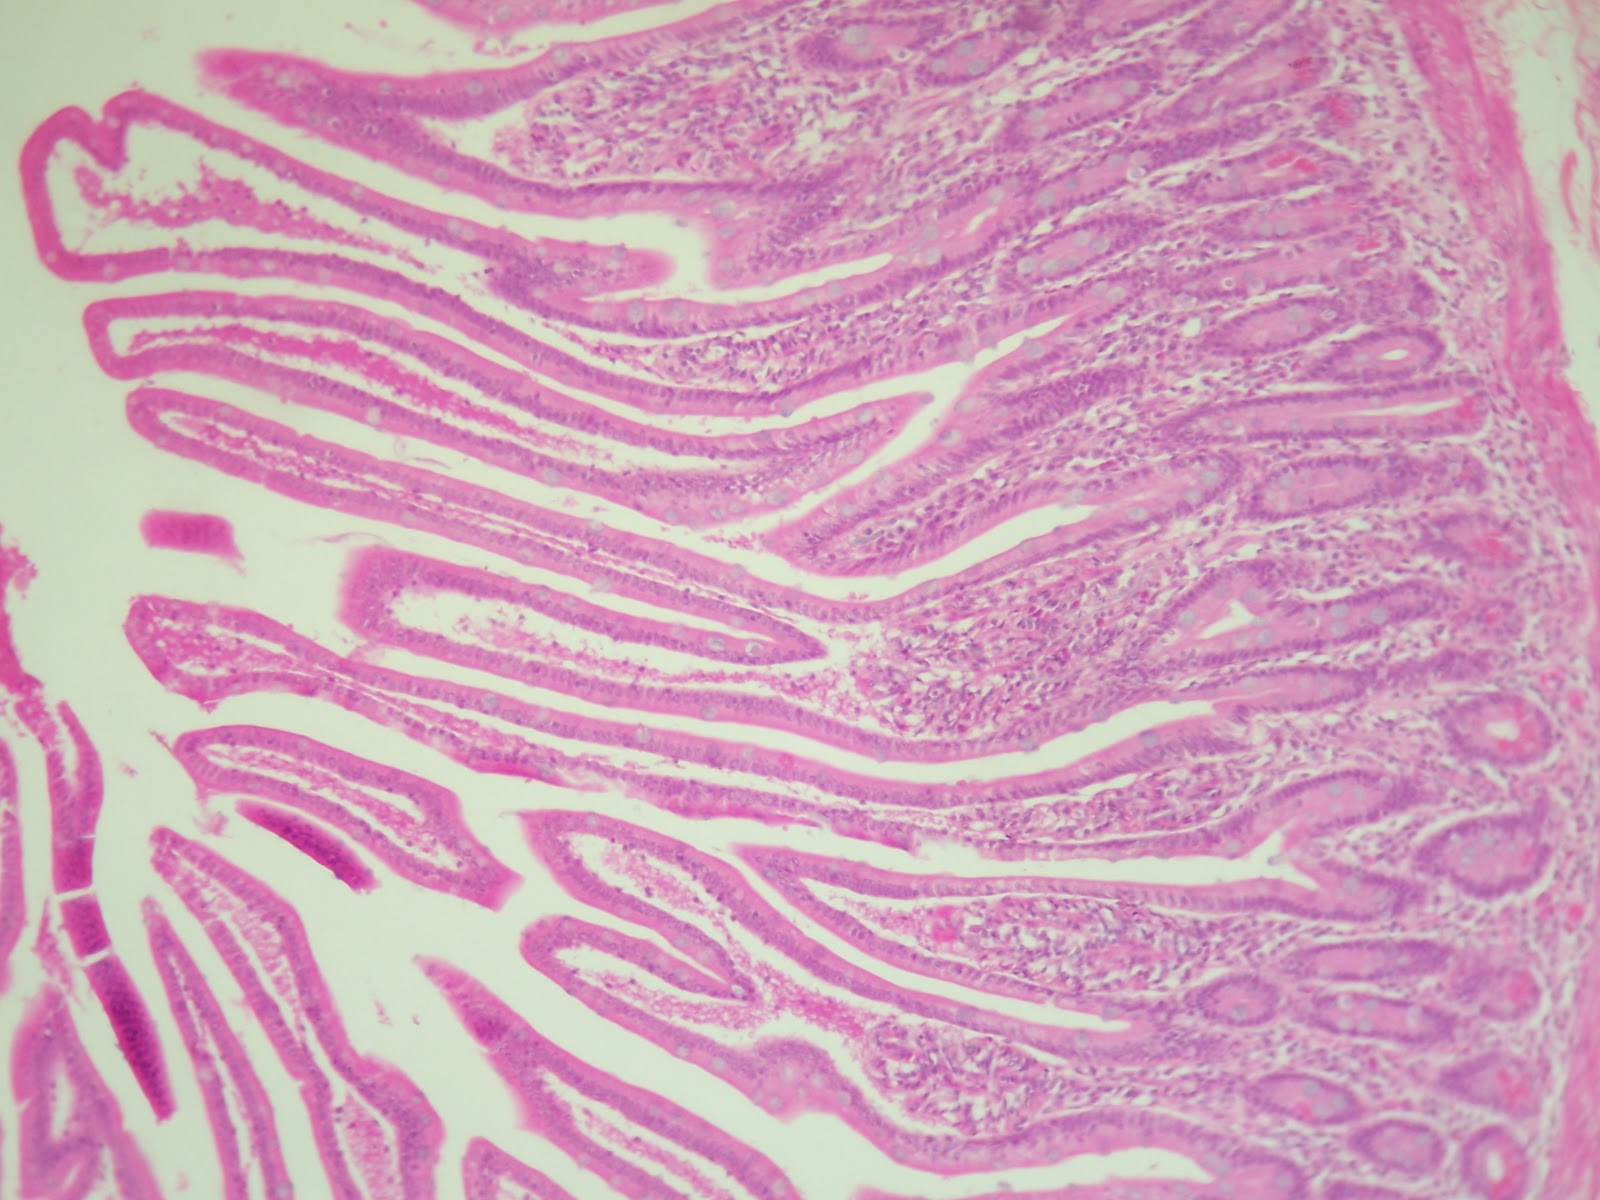 Medical Student Support System: Histology Slides